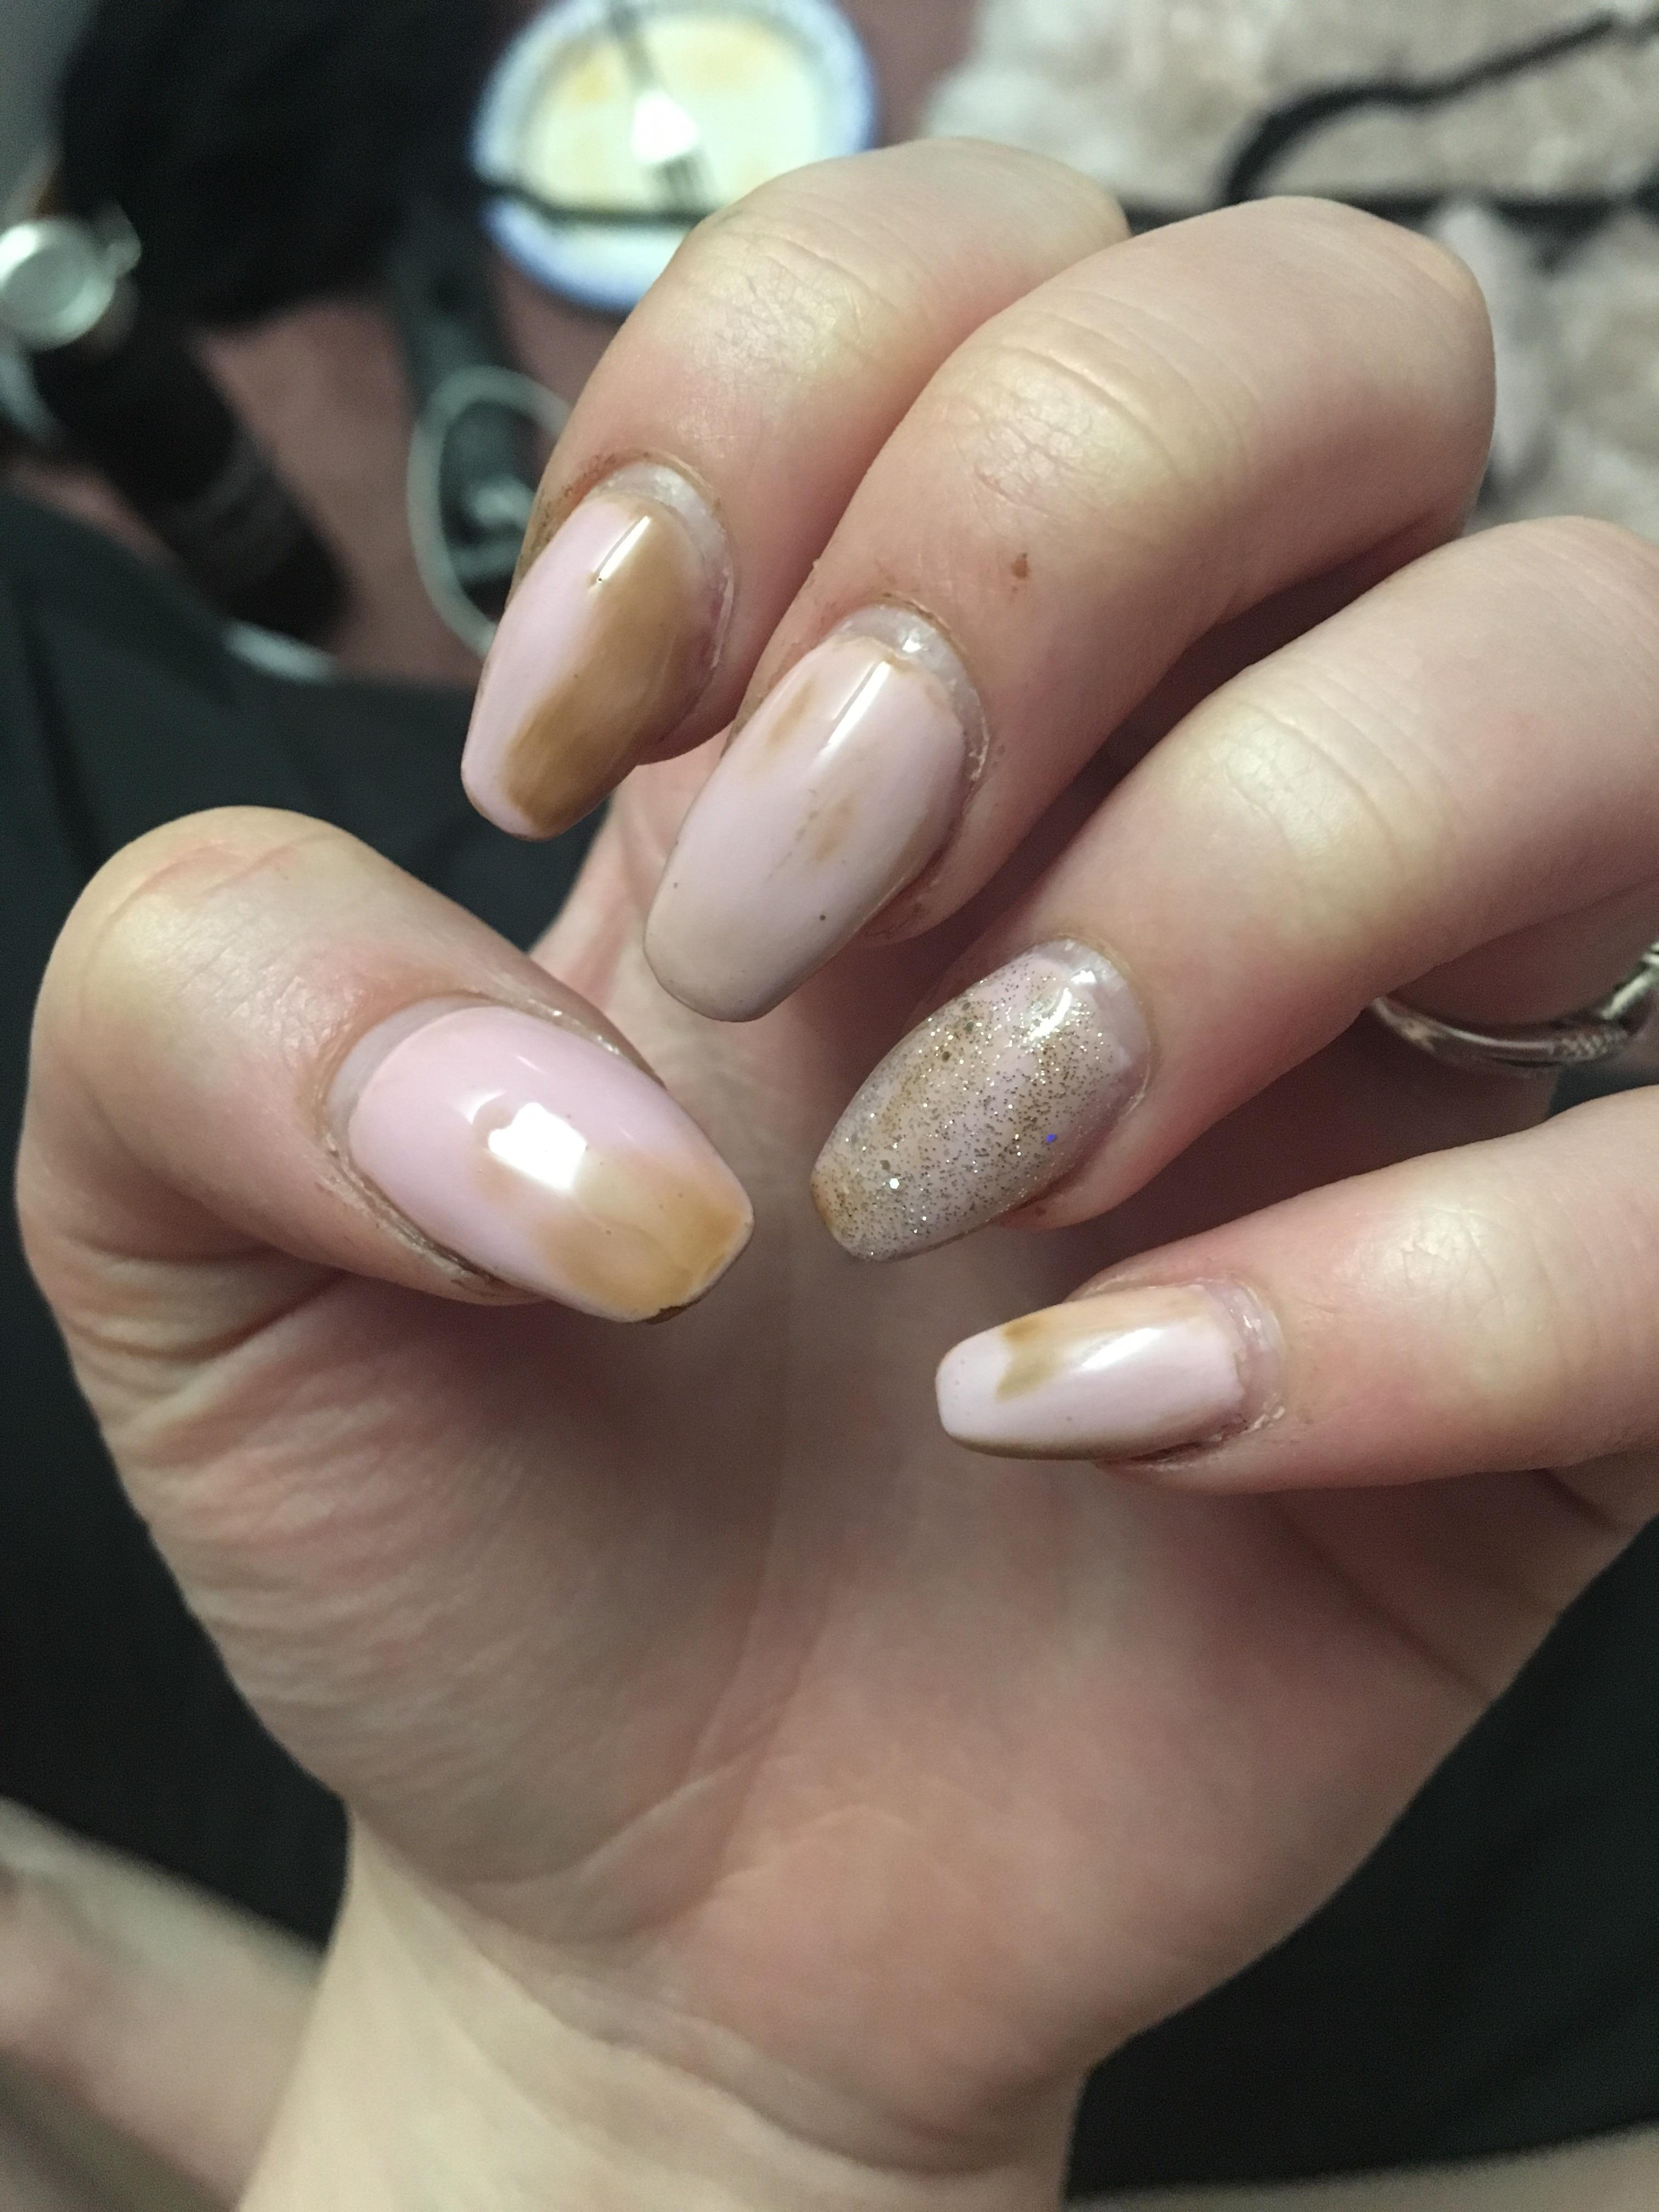 How To Clean Stained Gel Nails : clean, stained, nails, Nails, Turning, Brown??, Hands, Painted, Yesterday., TheGirlSurvivalGuide